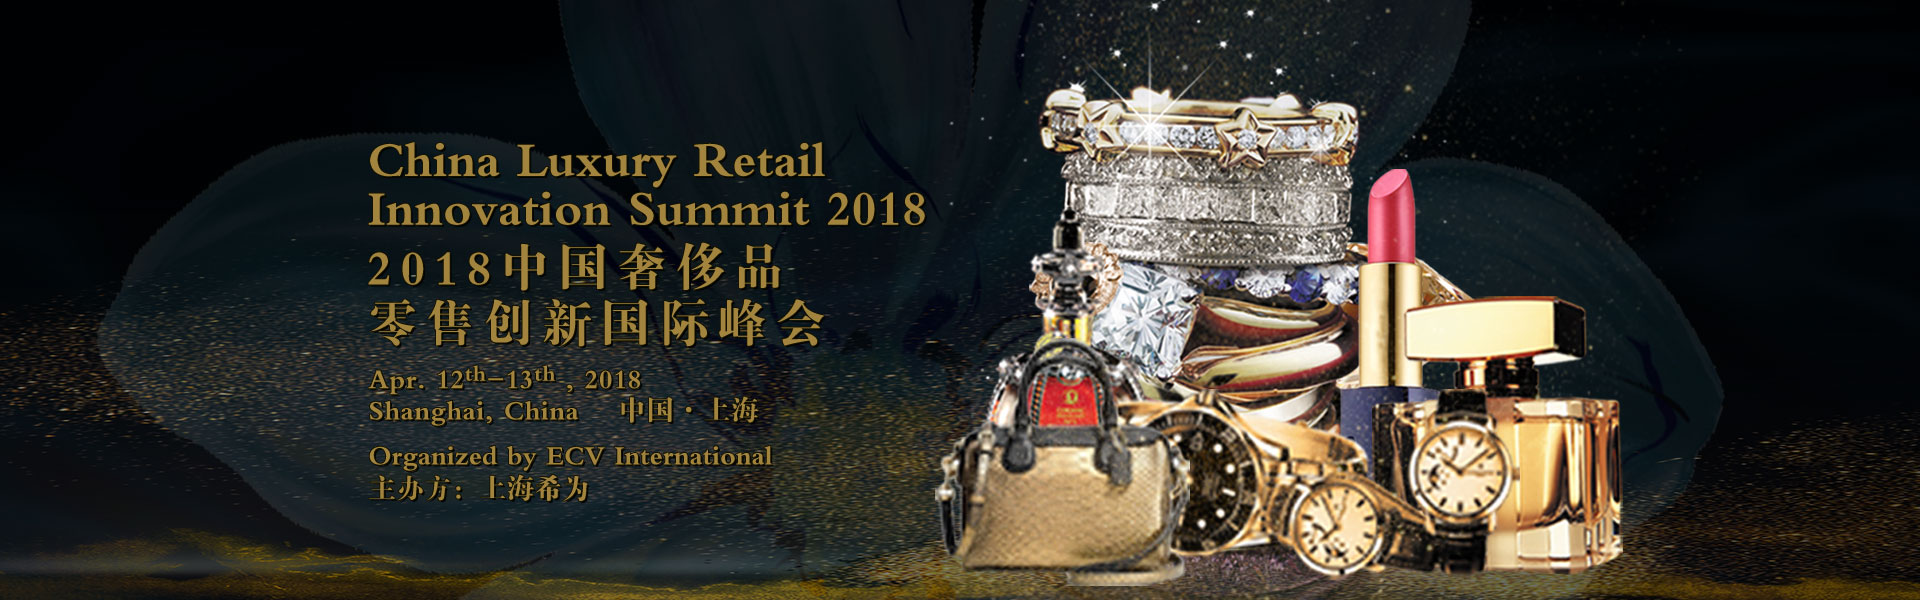 China Luxury Retail Innovation Summit 2018